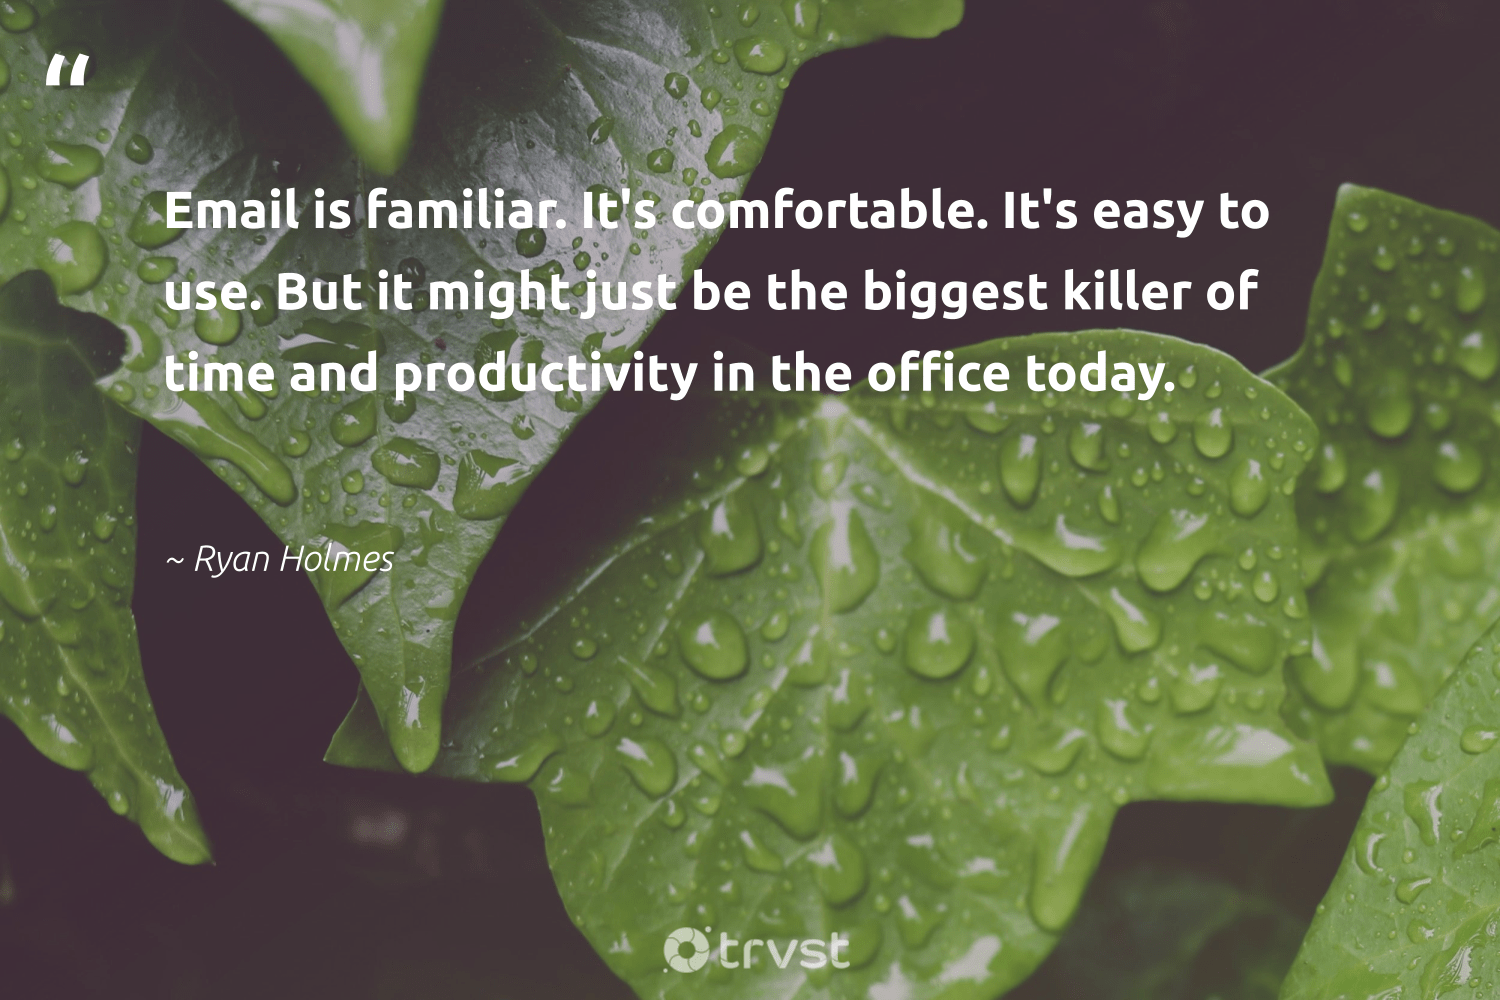 """""""Email is familiar. It's comfortable. It's easy to use. But it might just be the biggest killer of time and productivity in the office today.""""  - Ryan Holmes #trvst #quotes #productivity #goals #nevergiveup #begreat #ecoconscious #productive #futureofwork #softskills #collectiveaction #motivation"""